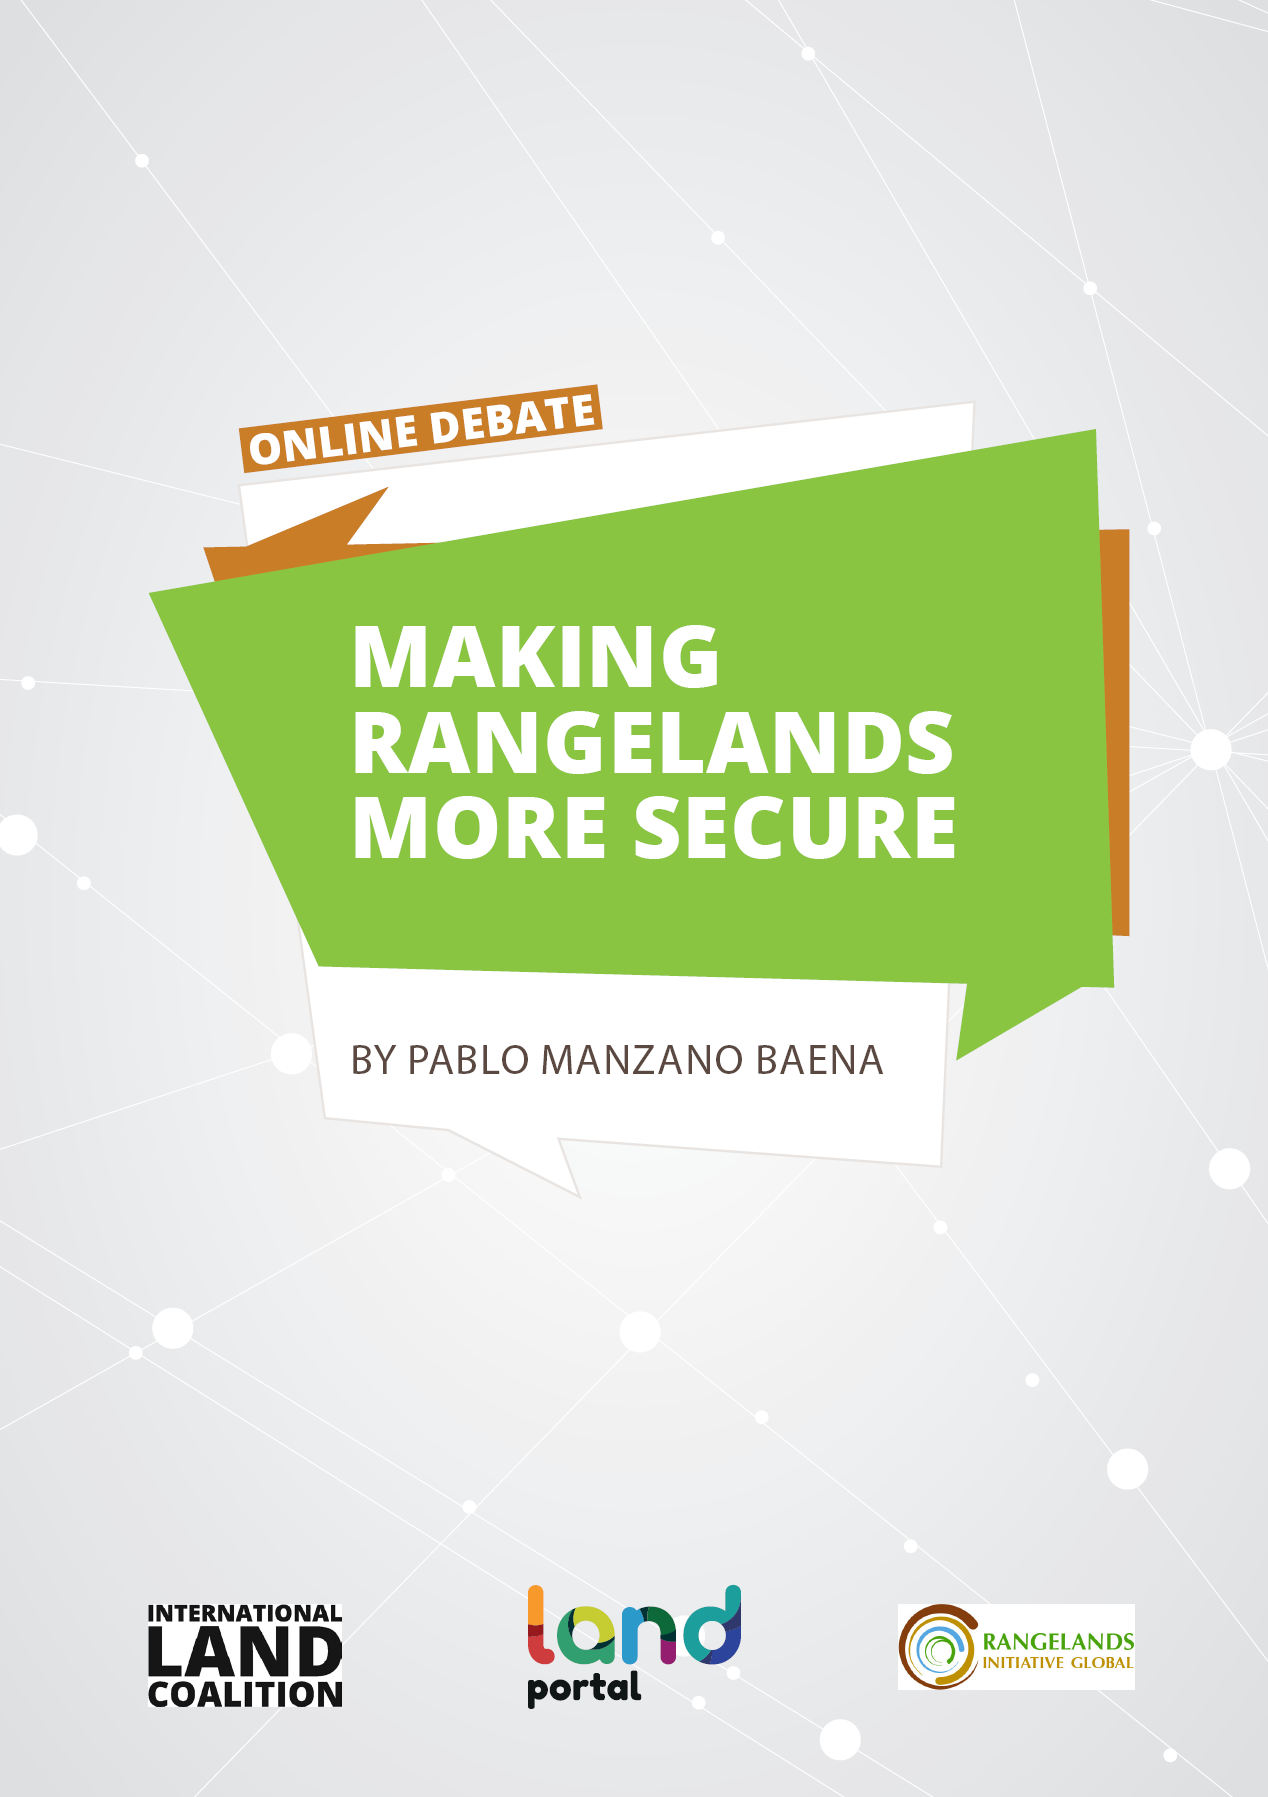 Making Rangelands More Secure